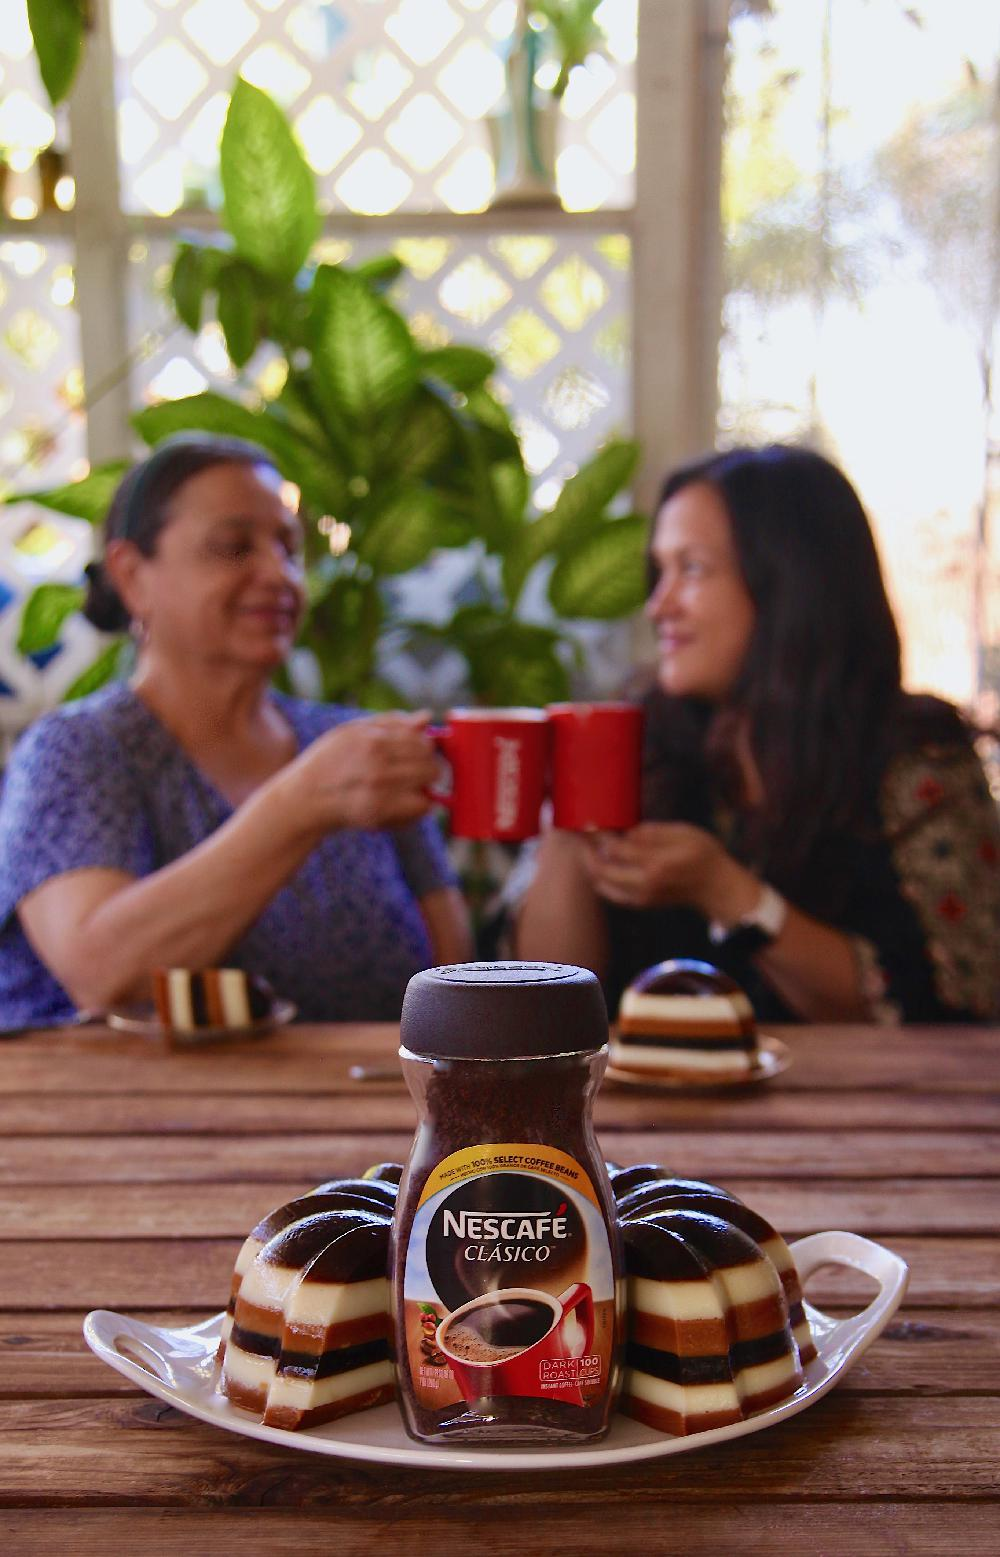 Sharing a moment with my Mom over Nescafé Clásico and gelatina.